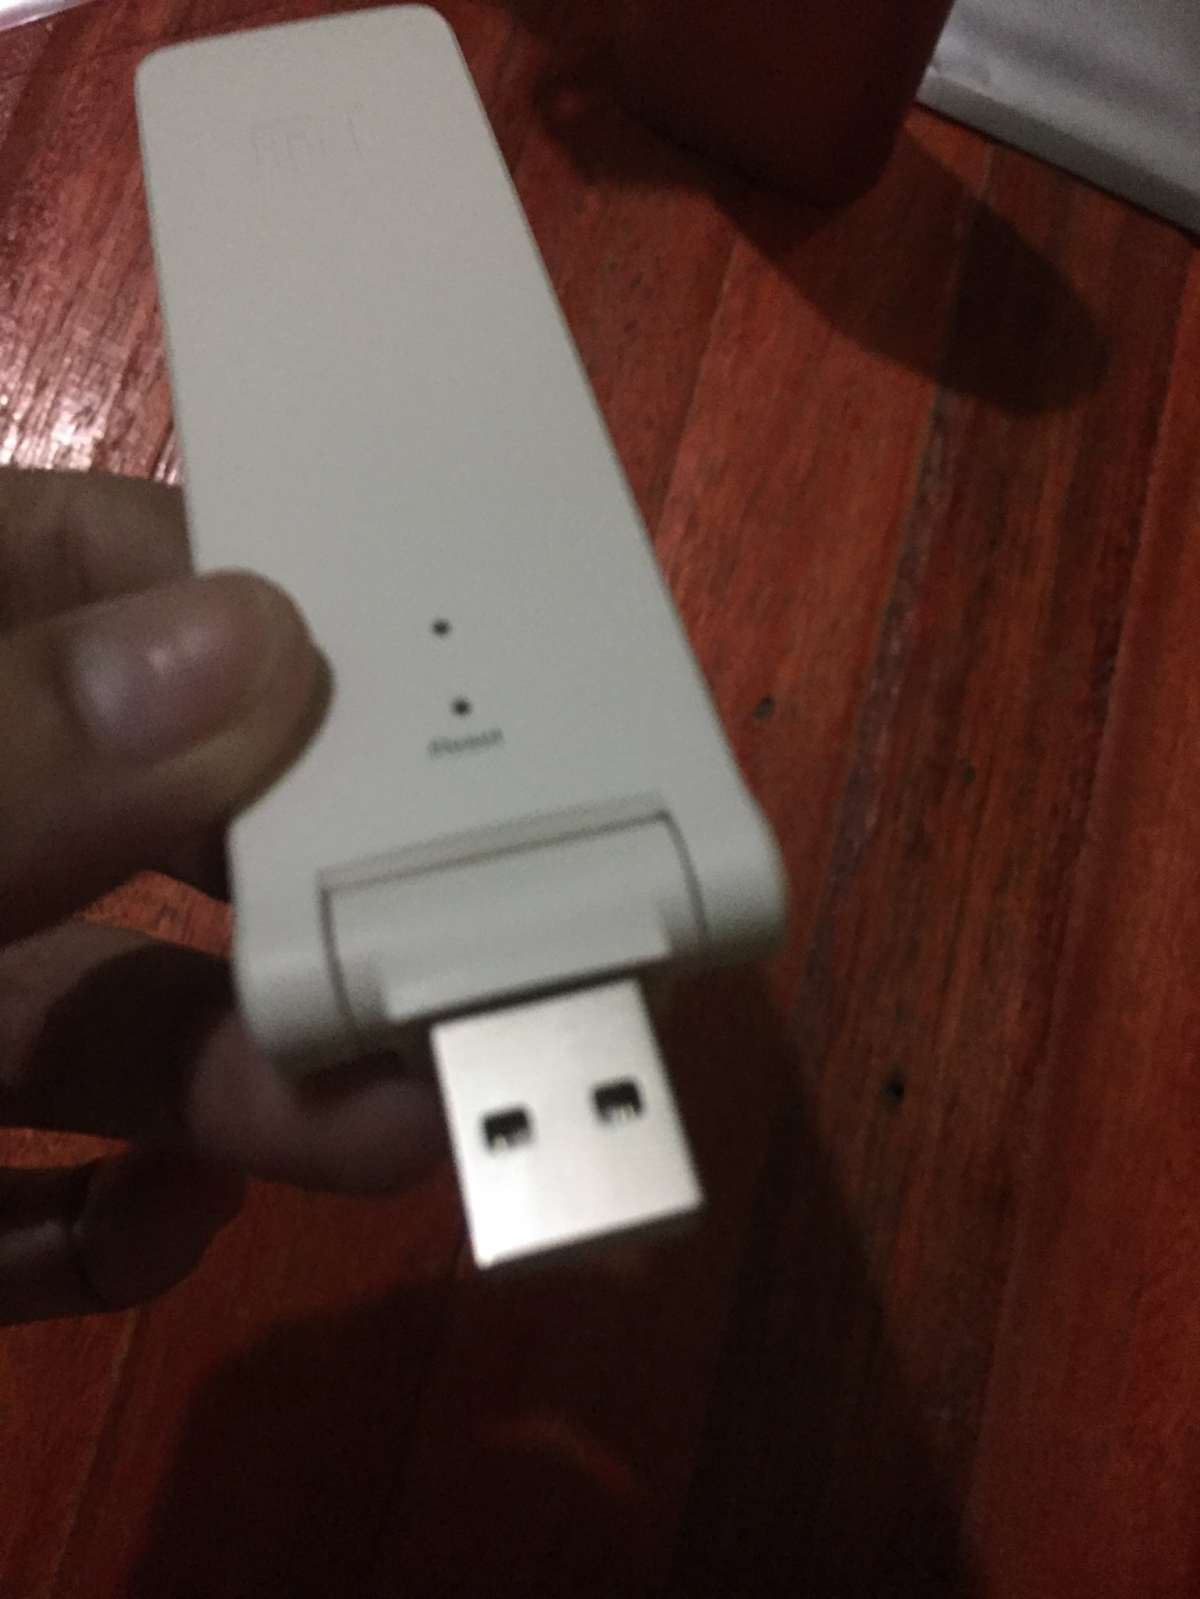 Xiaomi Mi WiFi Repeater 2 Quick Review and Set Up - Mielygraphy